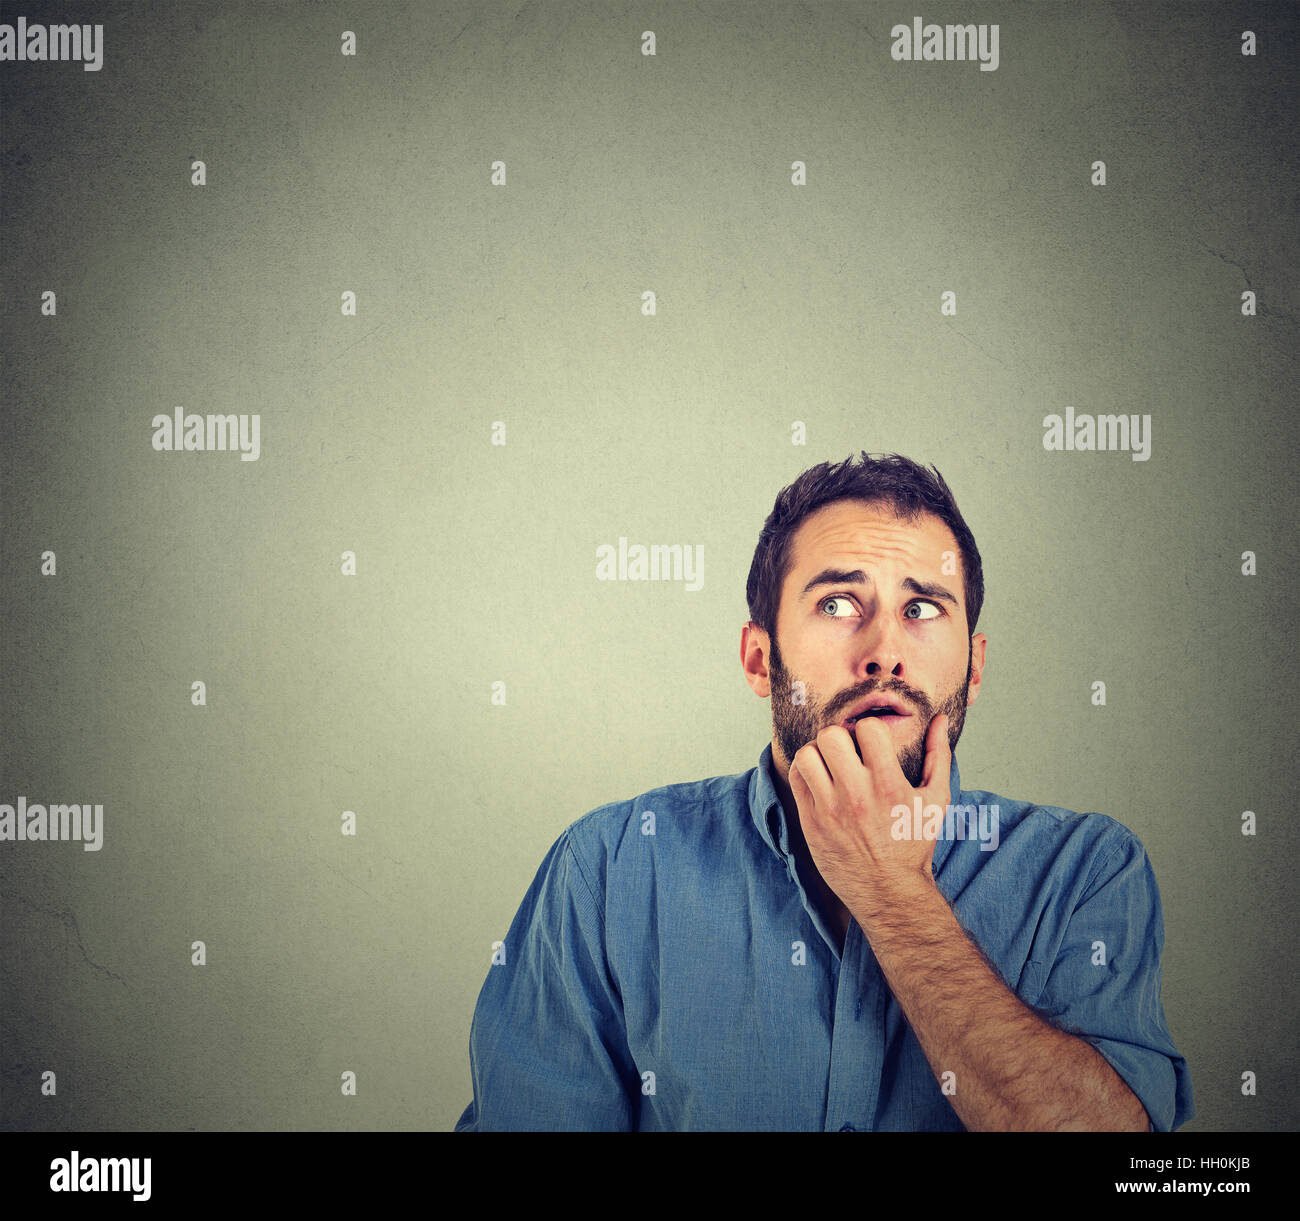 nervous stressed young man student biting fingernails looking up anxiously craving something isolated on gray wall - Stock Image